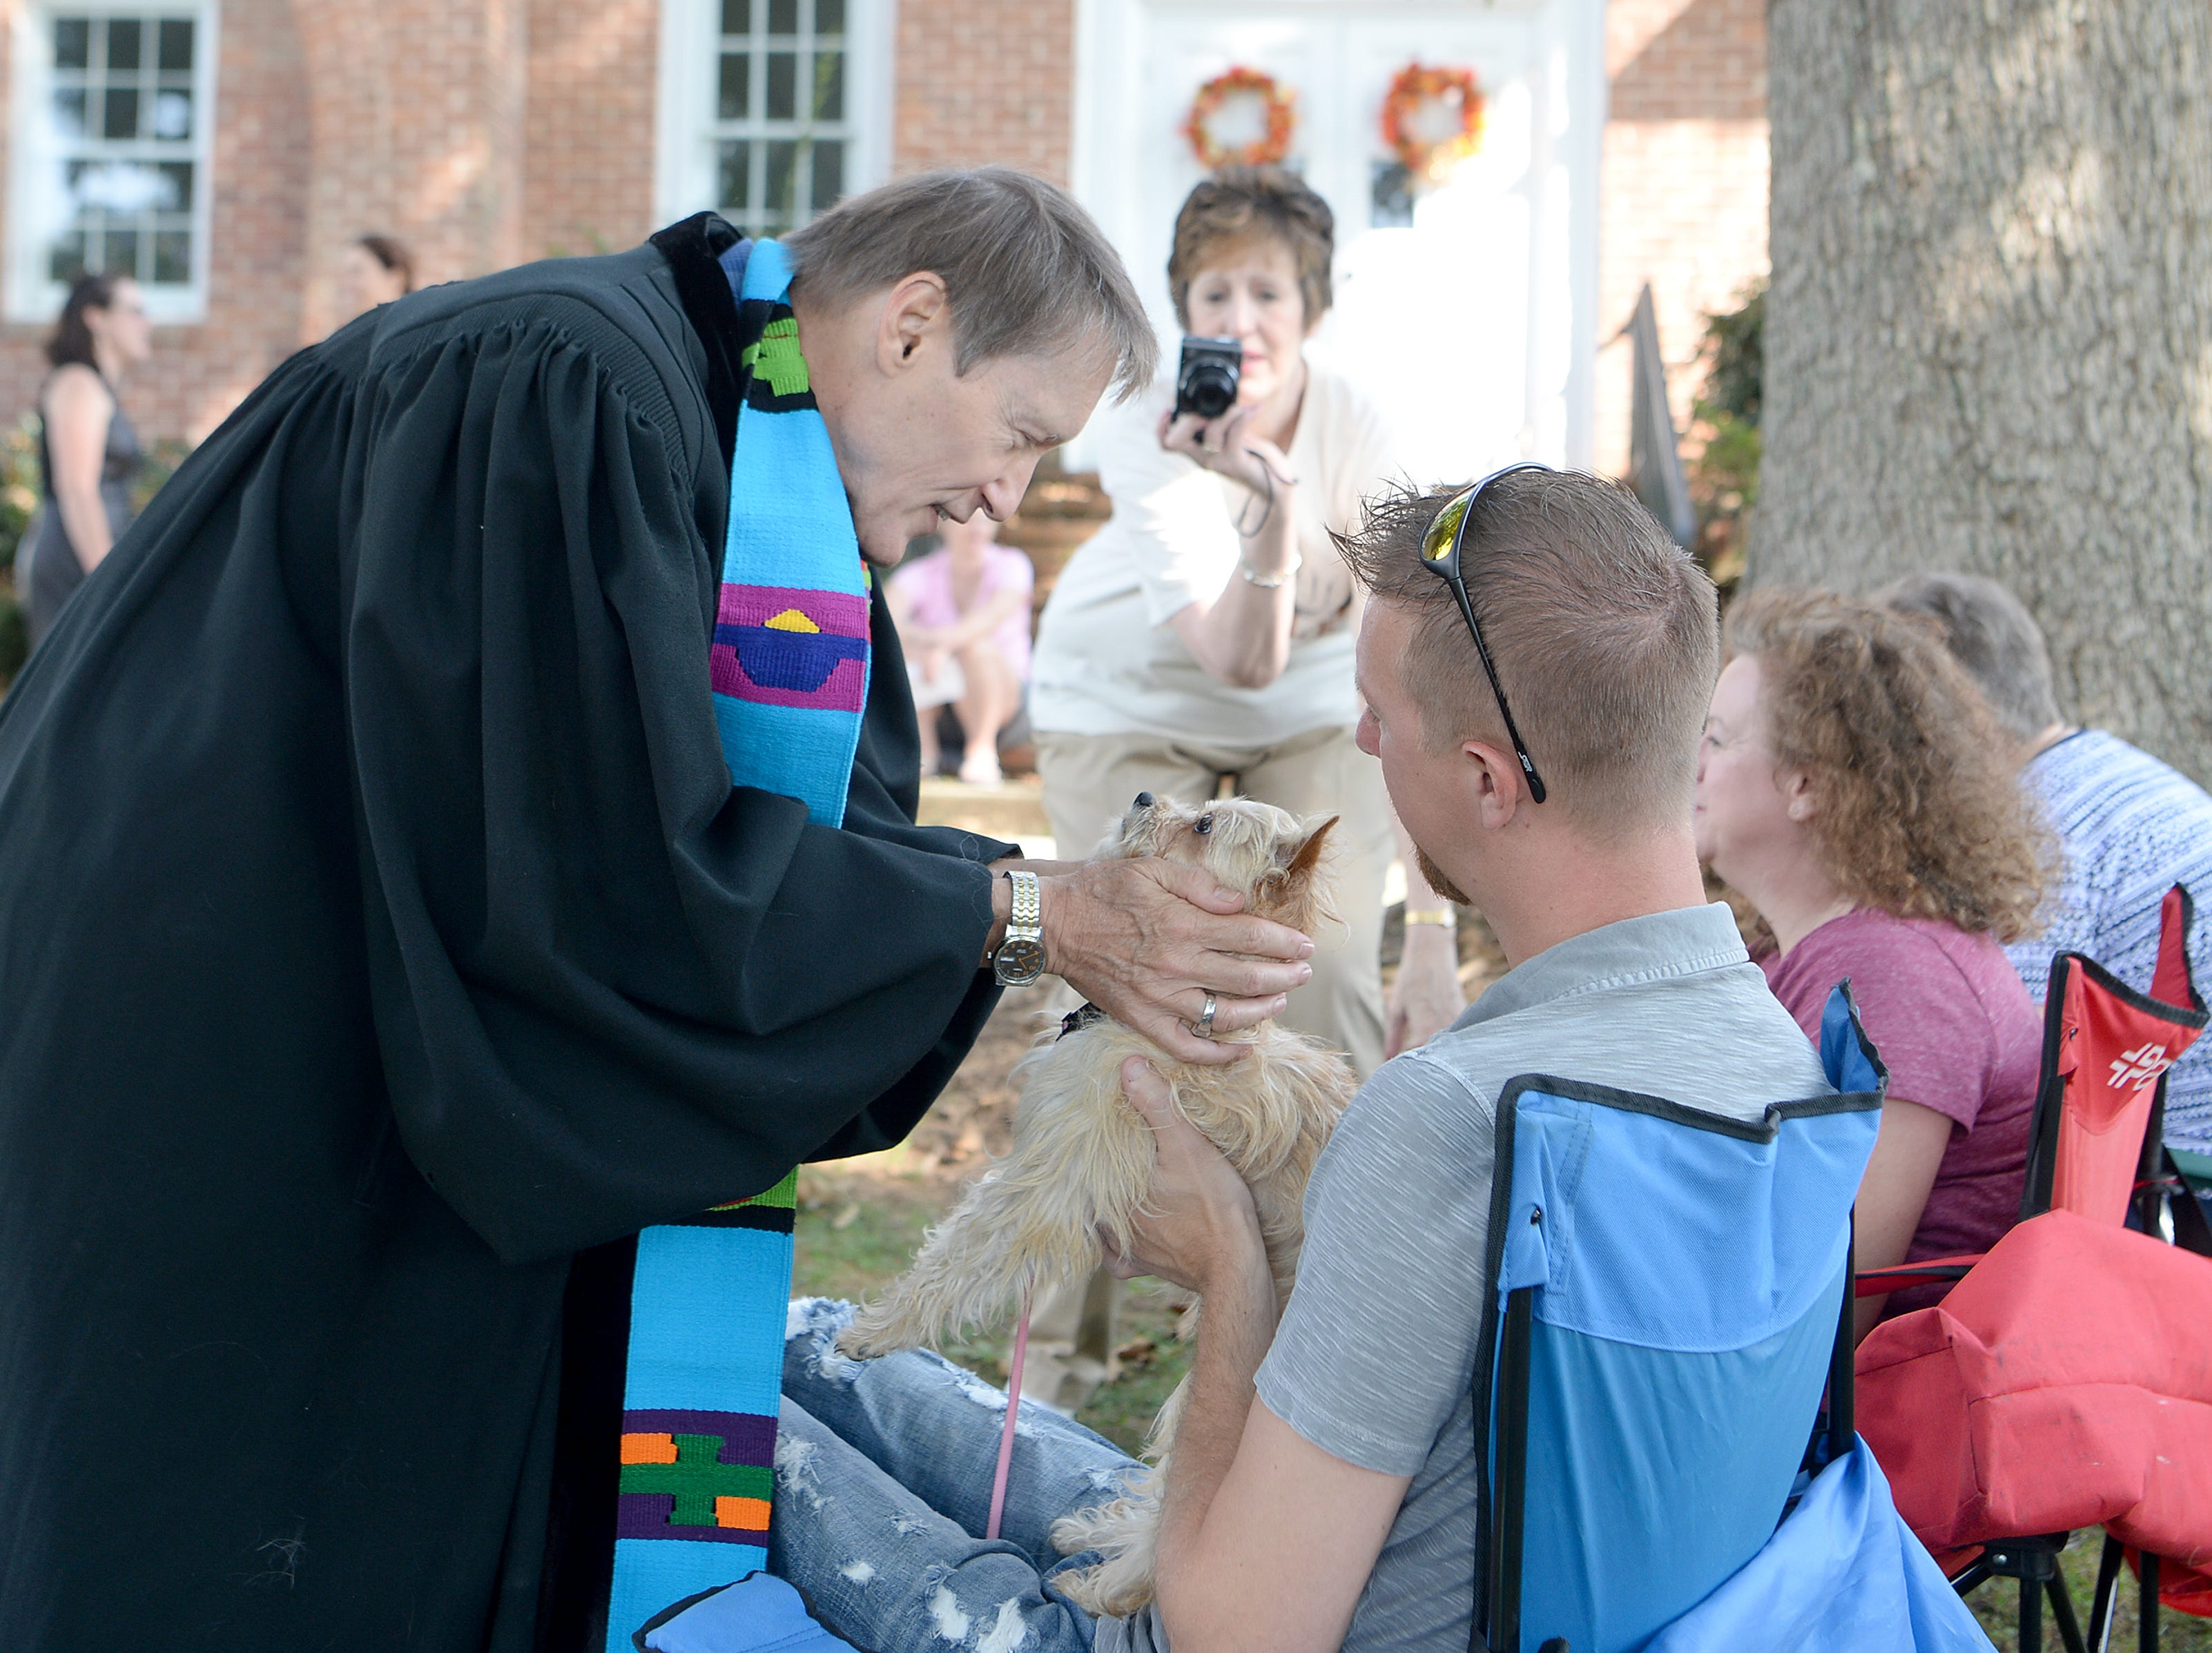 Randall Boggs blesses Kevin Fender's dog, Molly, during the 10th Annual Blessing of the Pets at Mills River Presbyterian Church on Sept. 8, 2018.